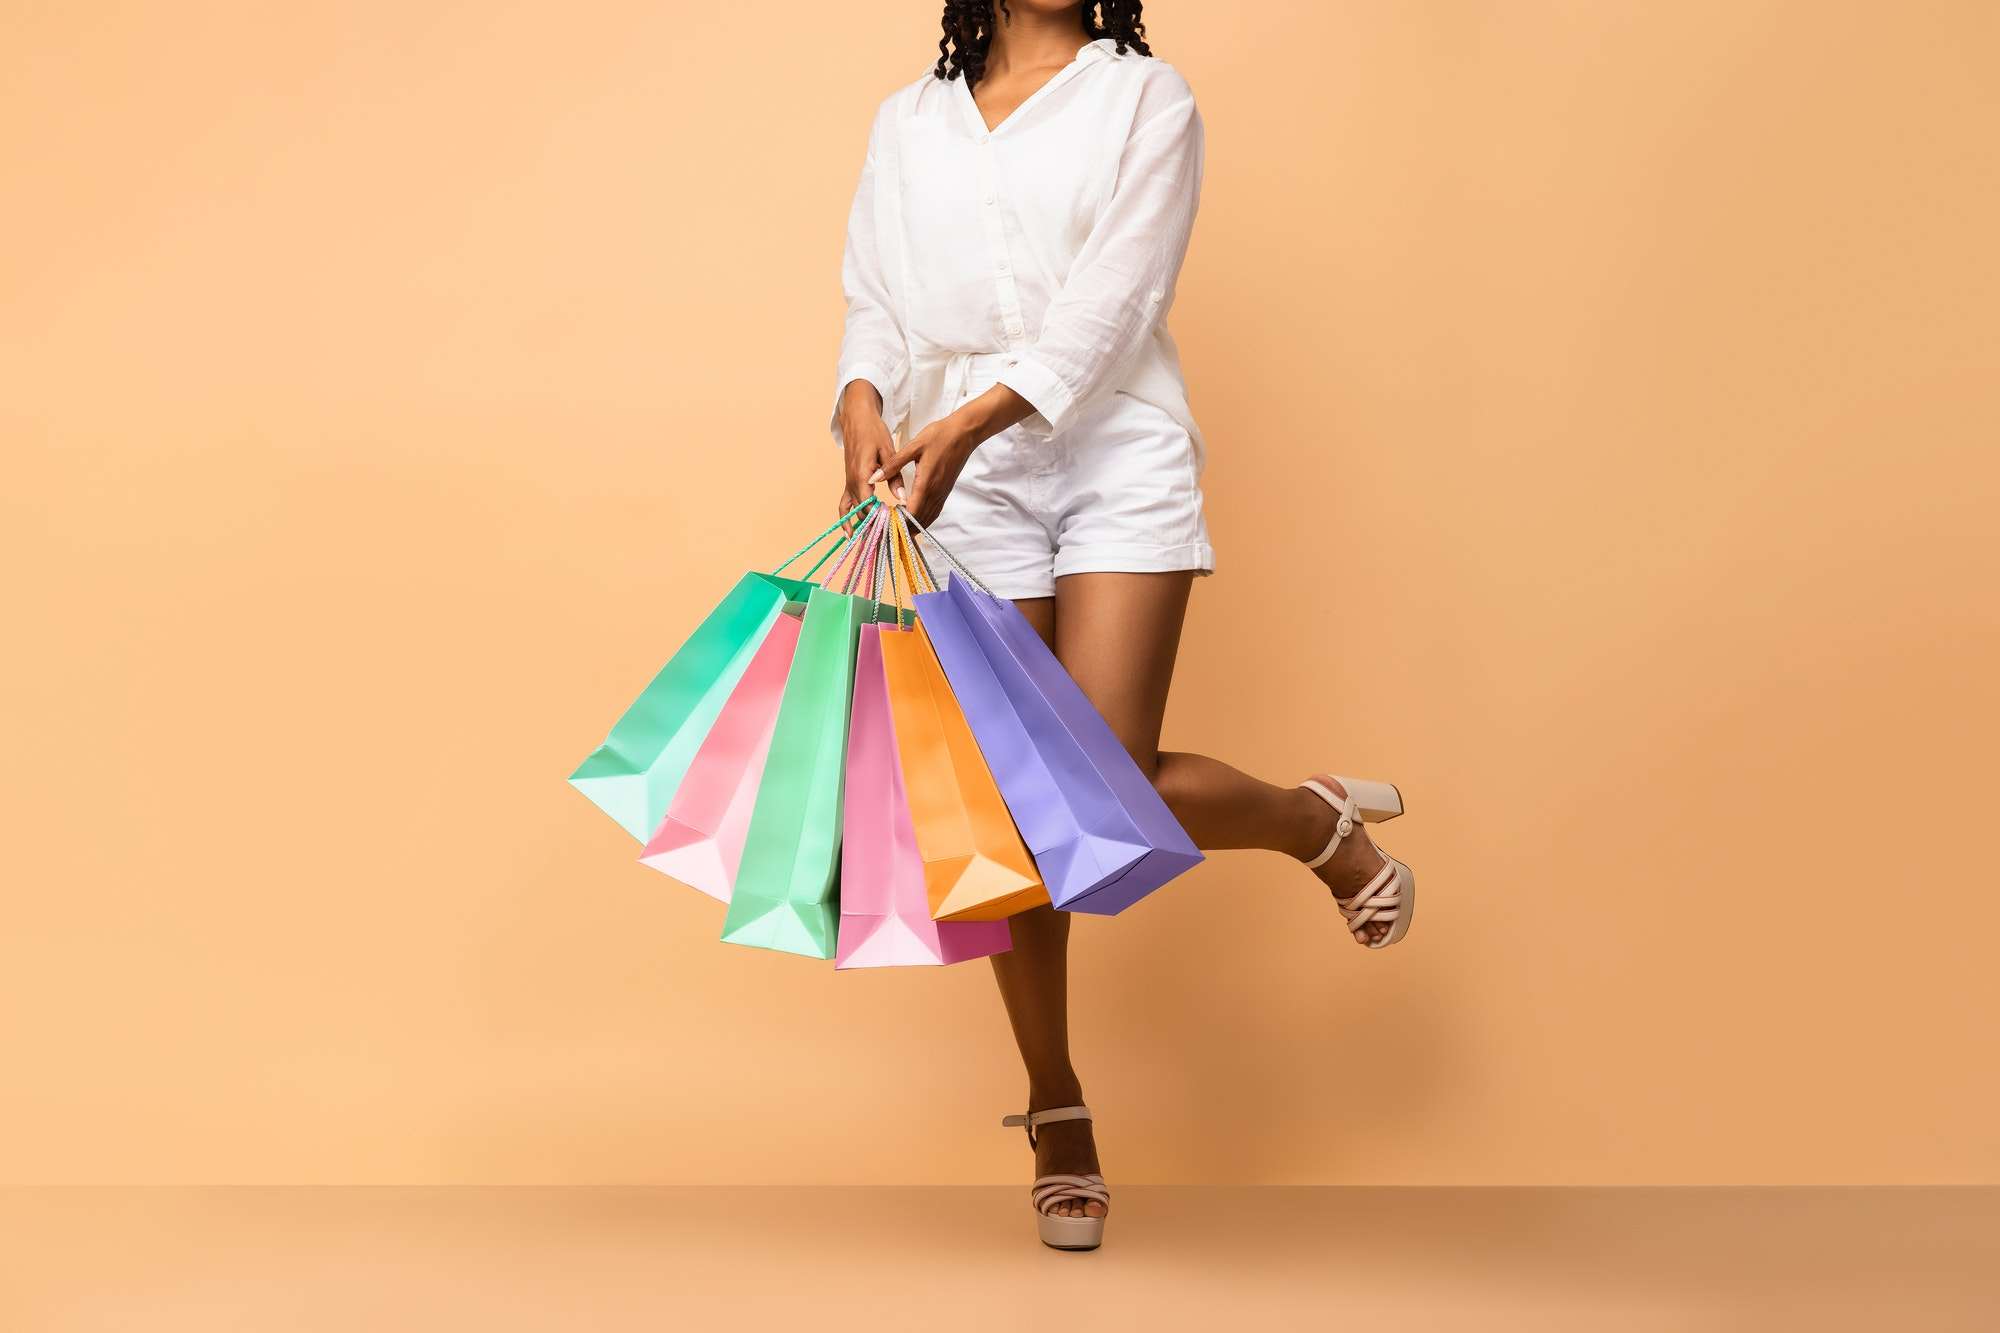 Unrecognizable Black Woman With Shopping Bags Posing In Studio, Cropped